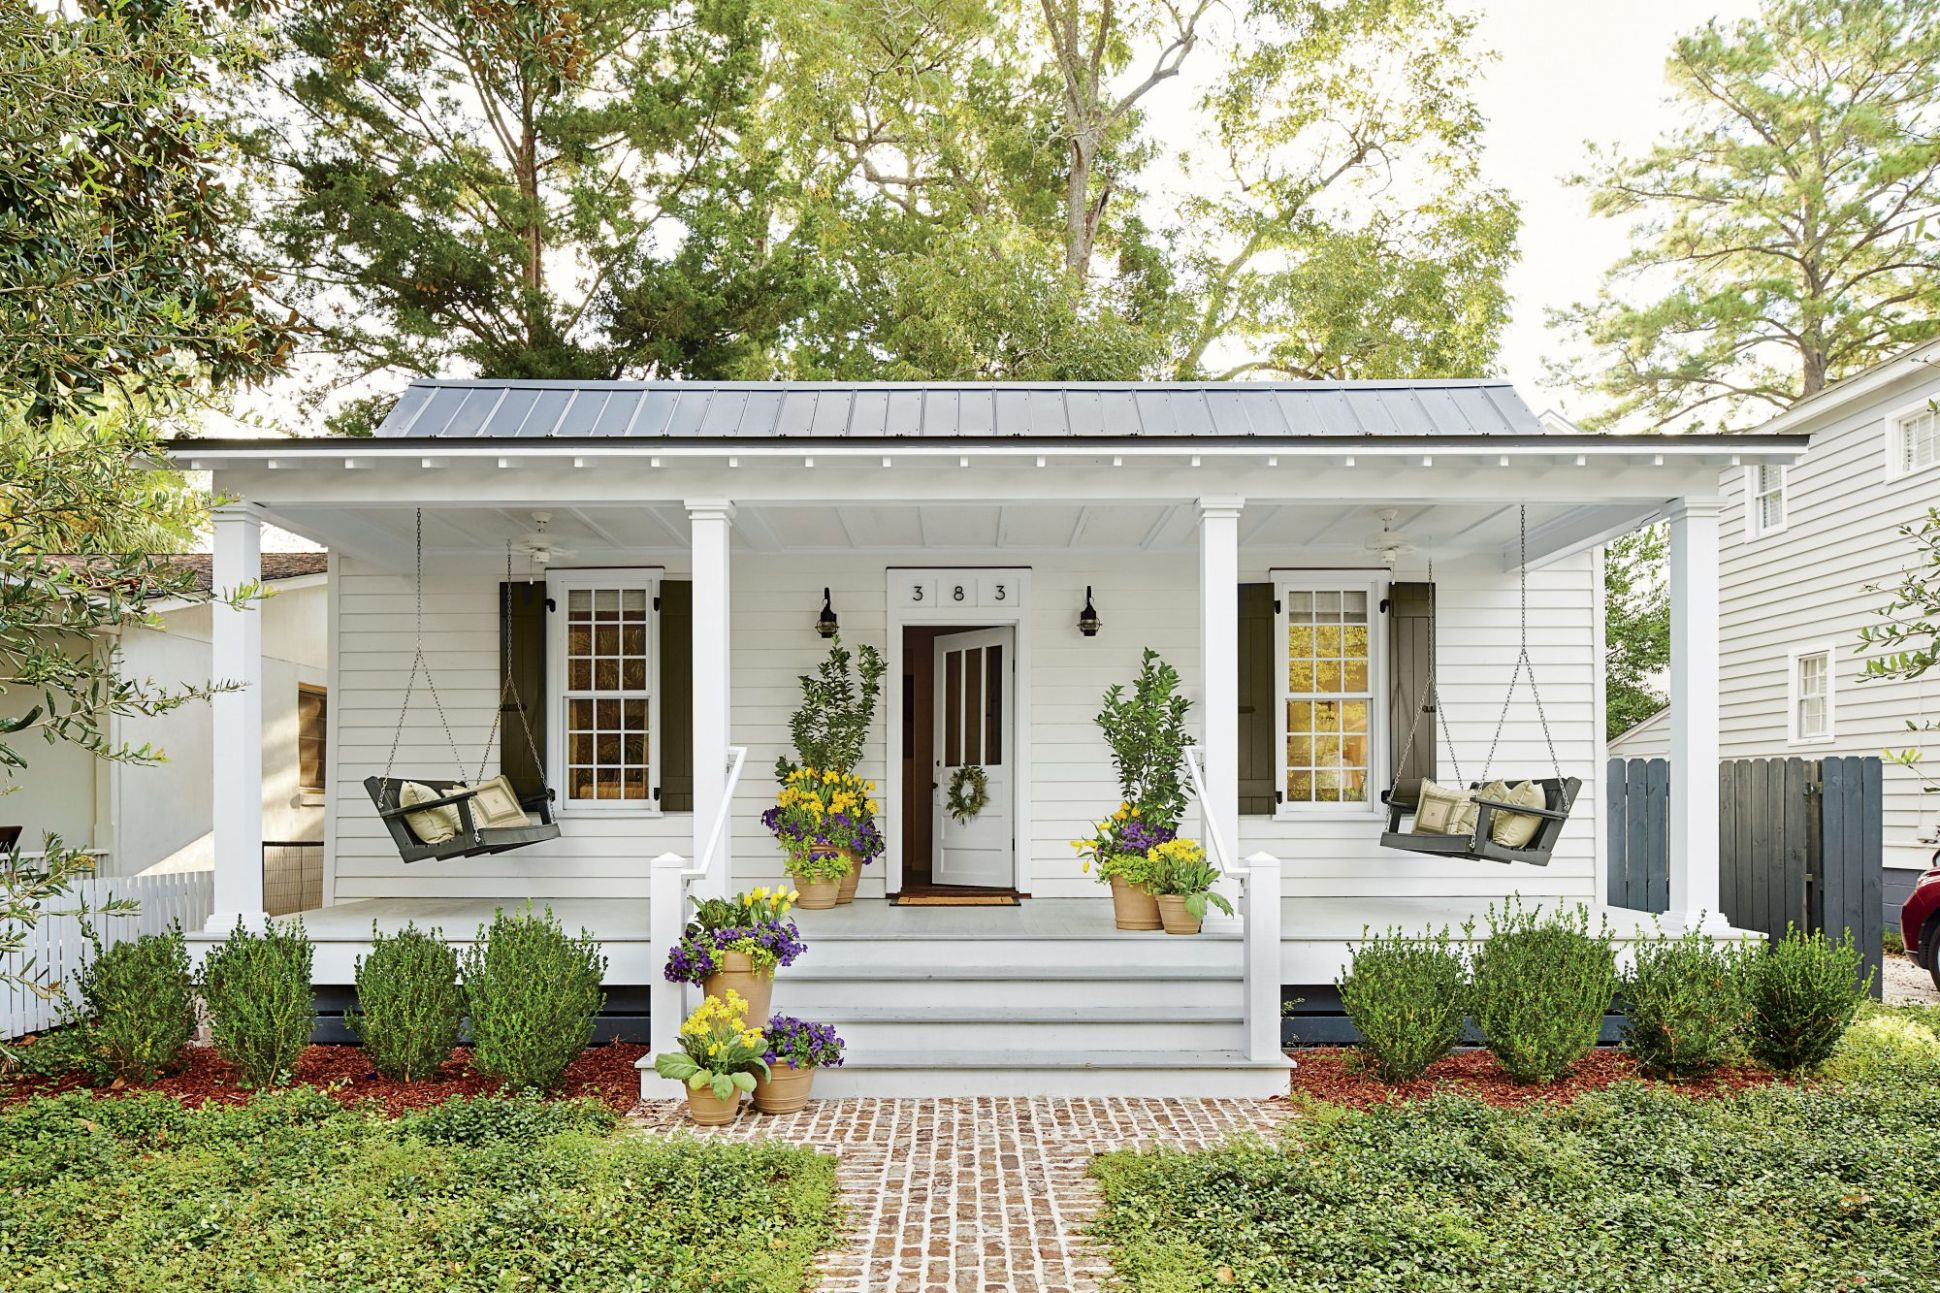 Front Porch Decorating Ideas for an Inviting Entry | Southern Living